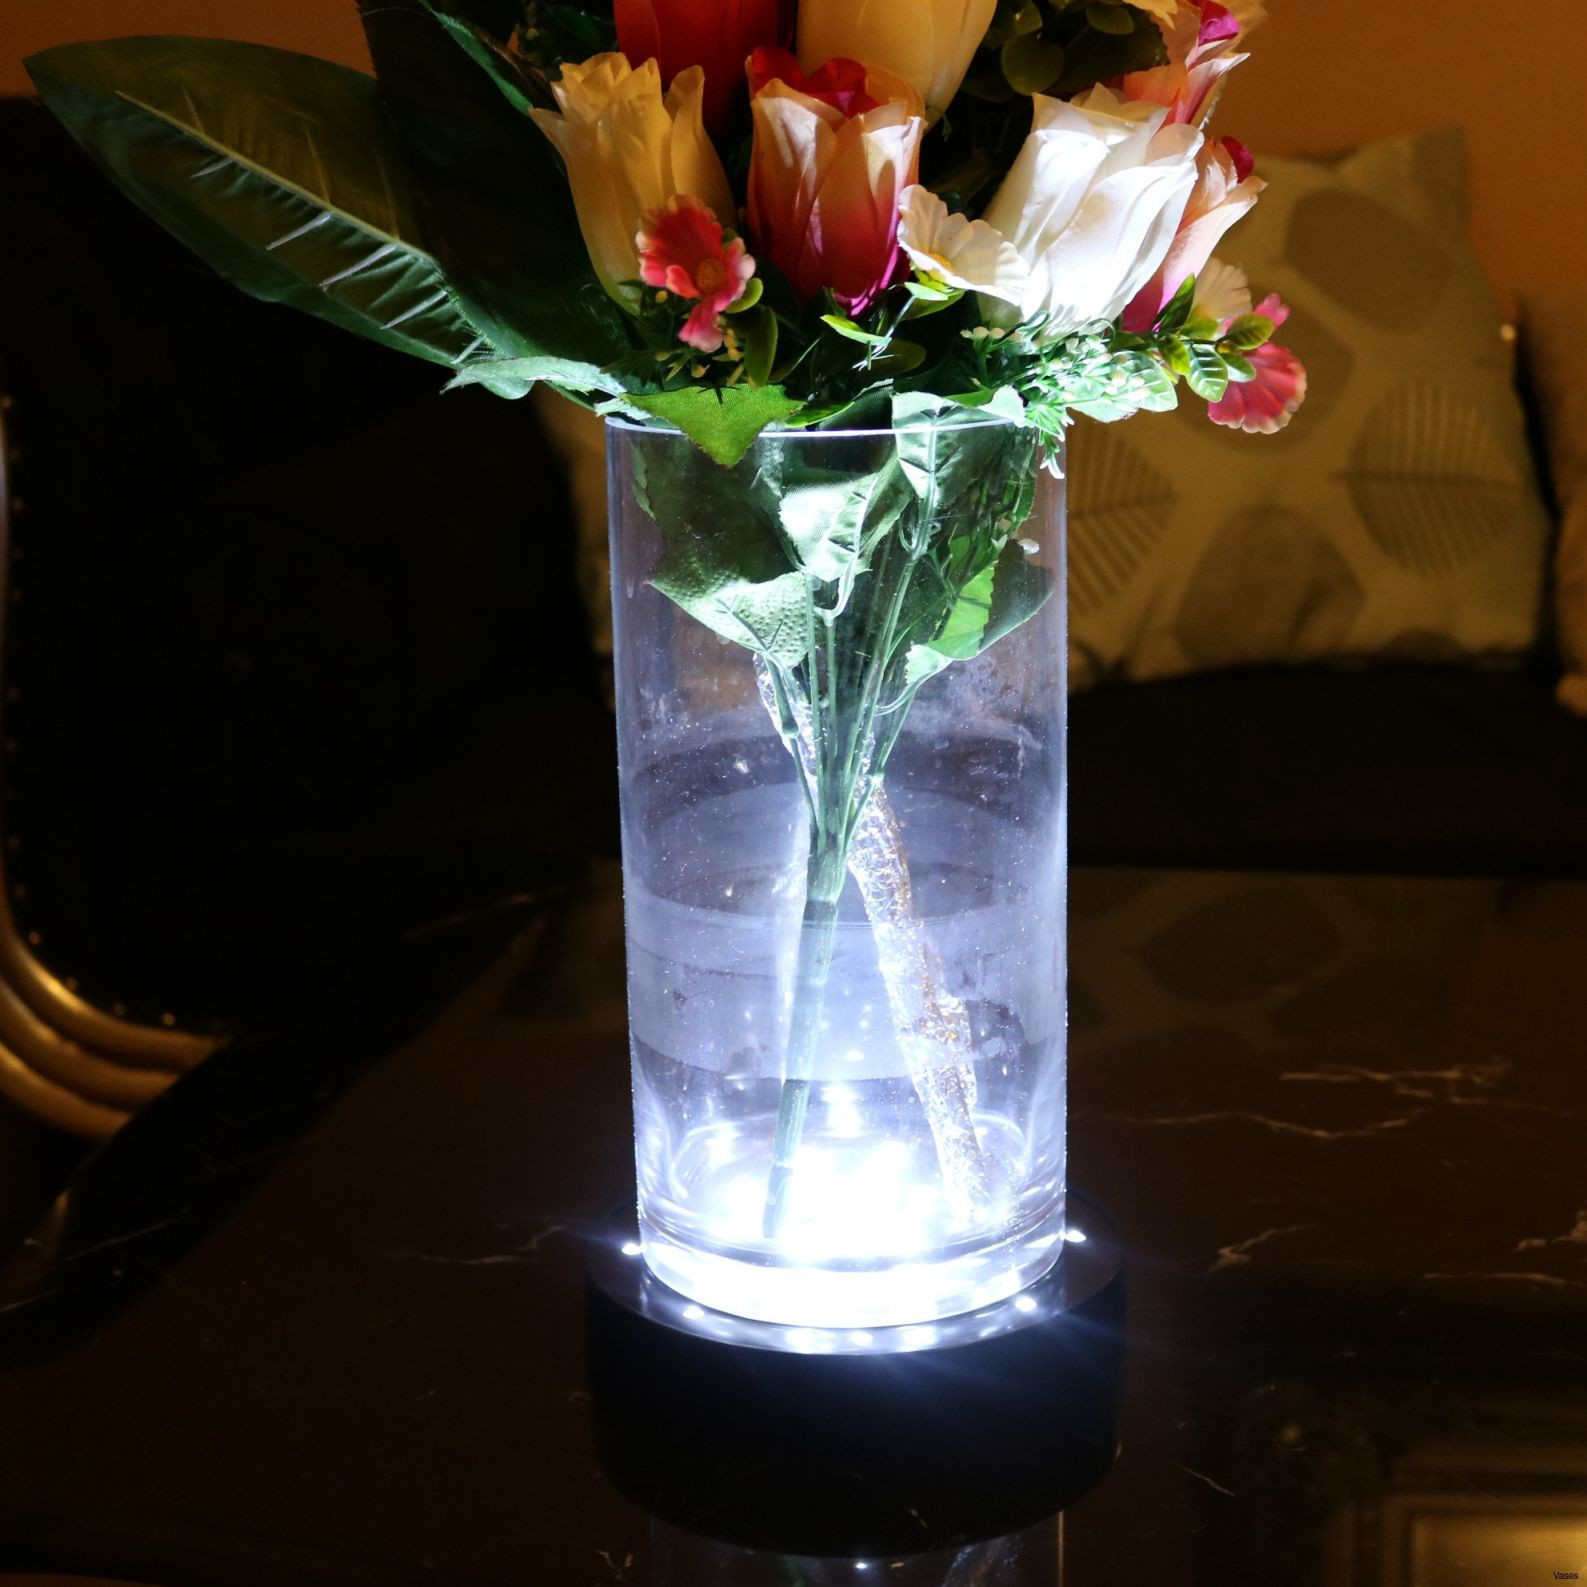 Very Vases Disposable Plastic Single Cheap Flower Rose Vasei 0d Design Flowers And Fruits qv6